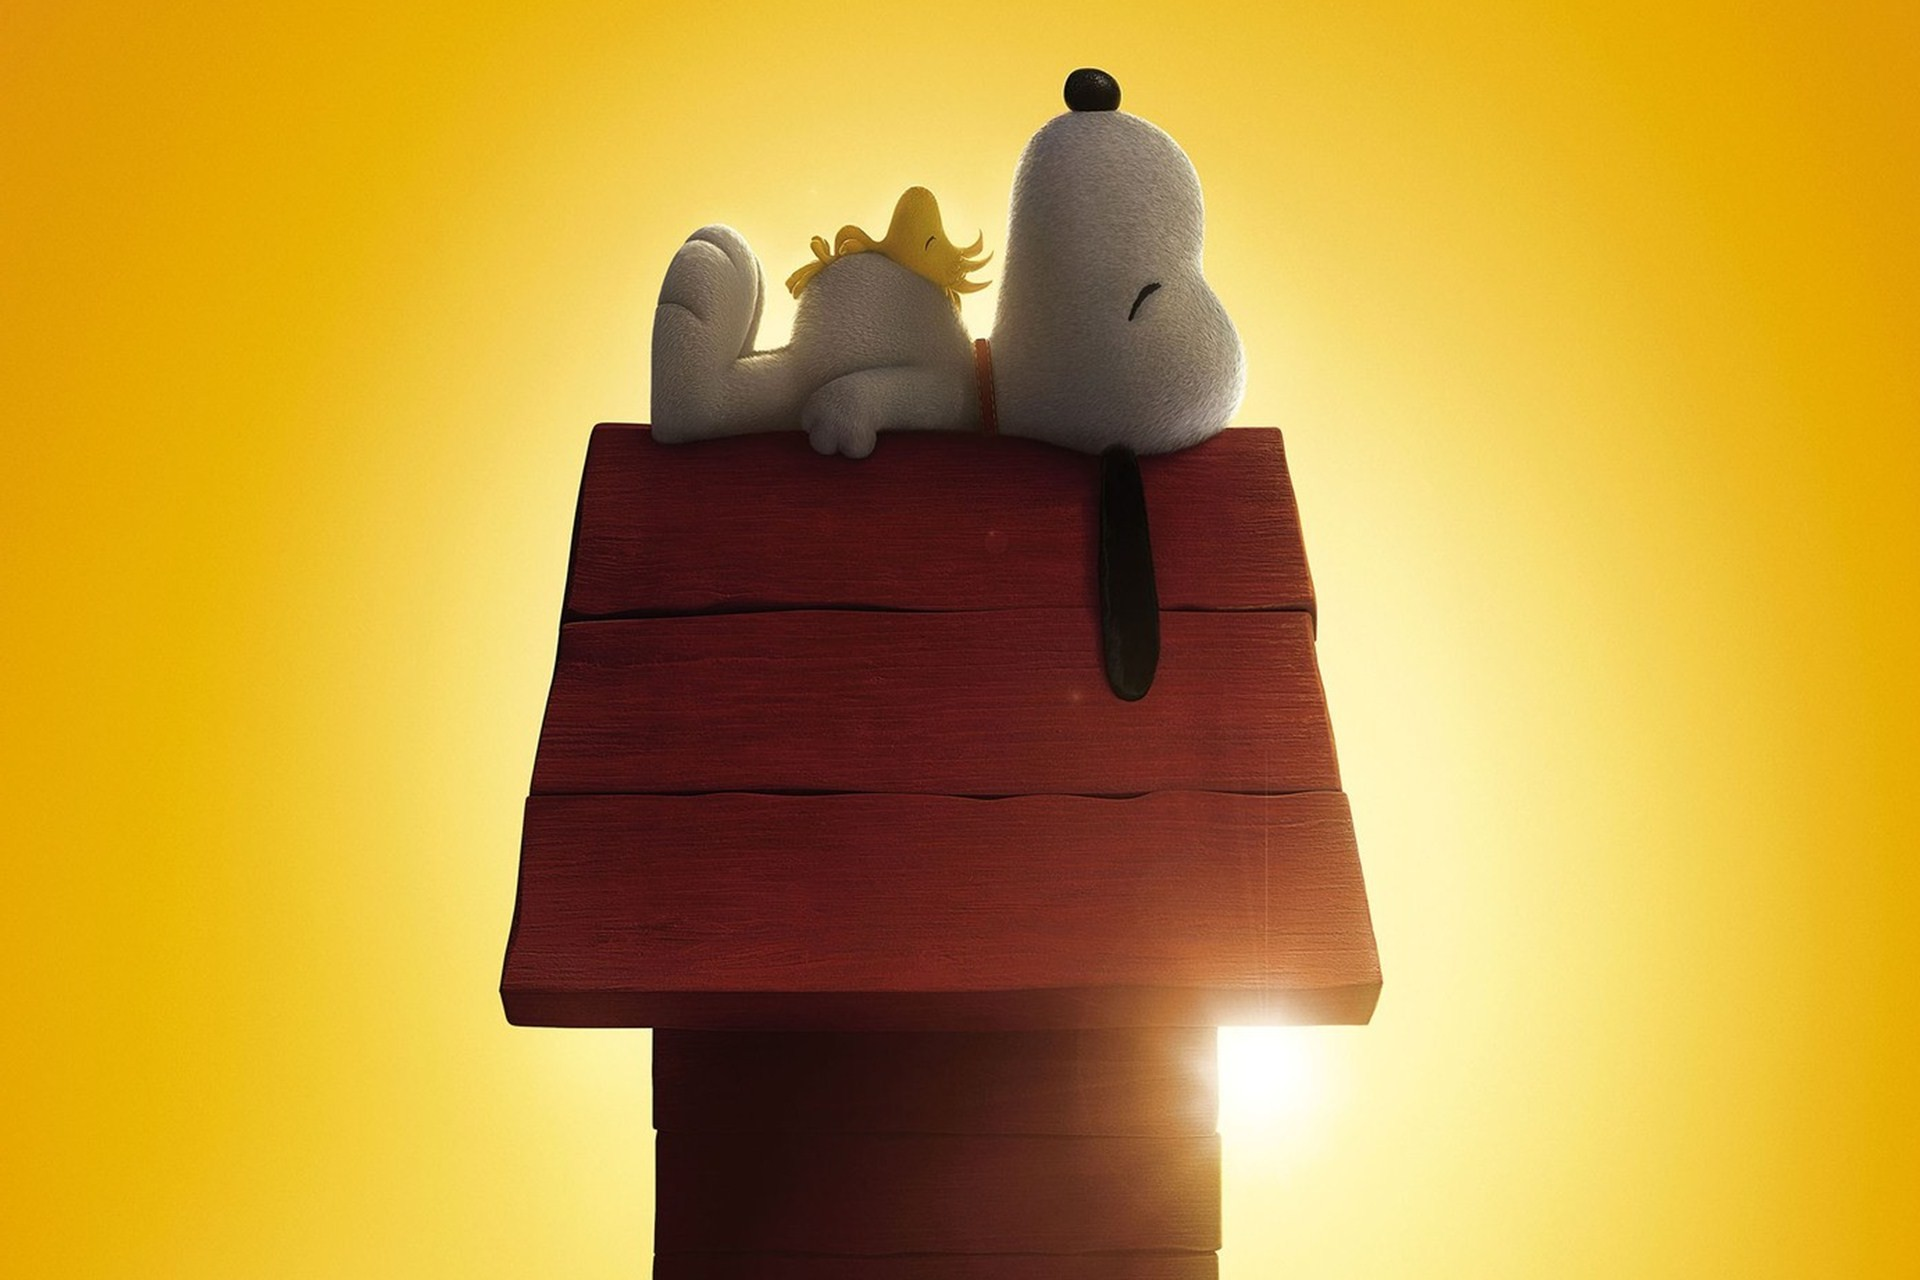 Snoopy HD Wallpapers Backgrounds Wallpaper 1024×768 Imagenes De Snoopy  Wallpapers (36 Wallpapers)